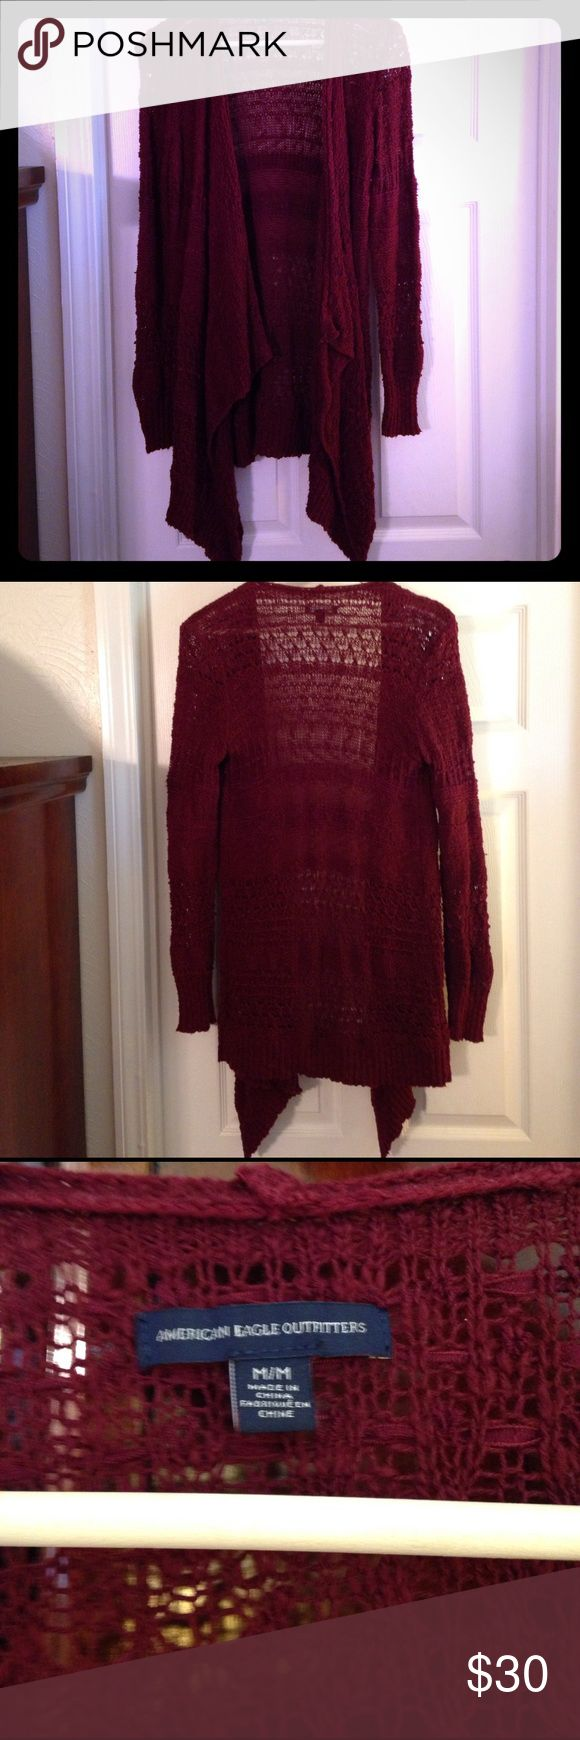 American Eagle Outfitters Cardigan. Very cute staple piece for any wardrobe! So comfortable! Stylish & right on trend for your favorite dress or complete your favorite outfit😍No trades. 0507 American Eagle Outfitters Sweaters Cardigans